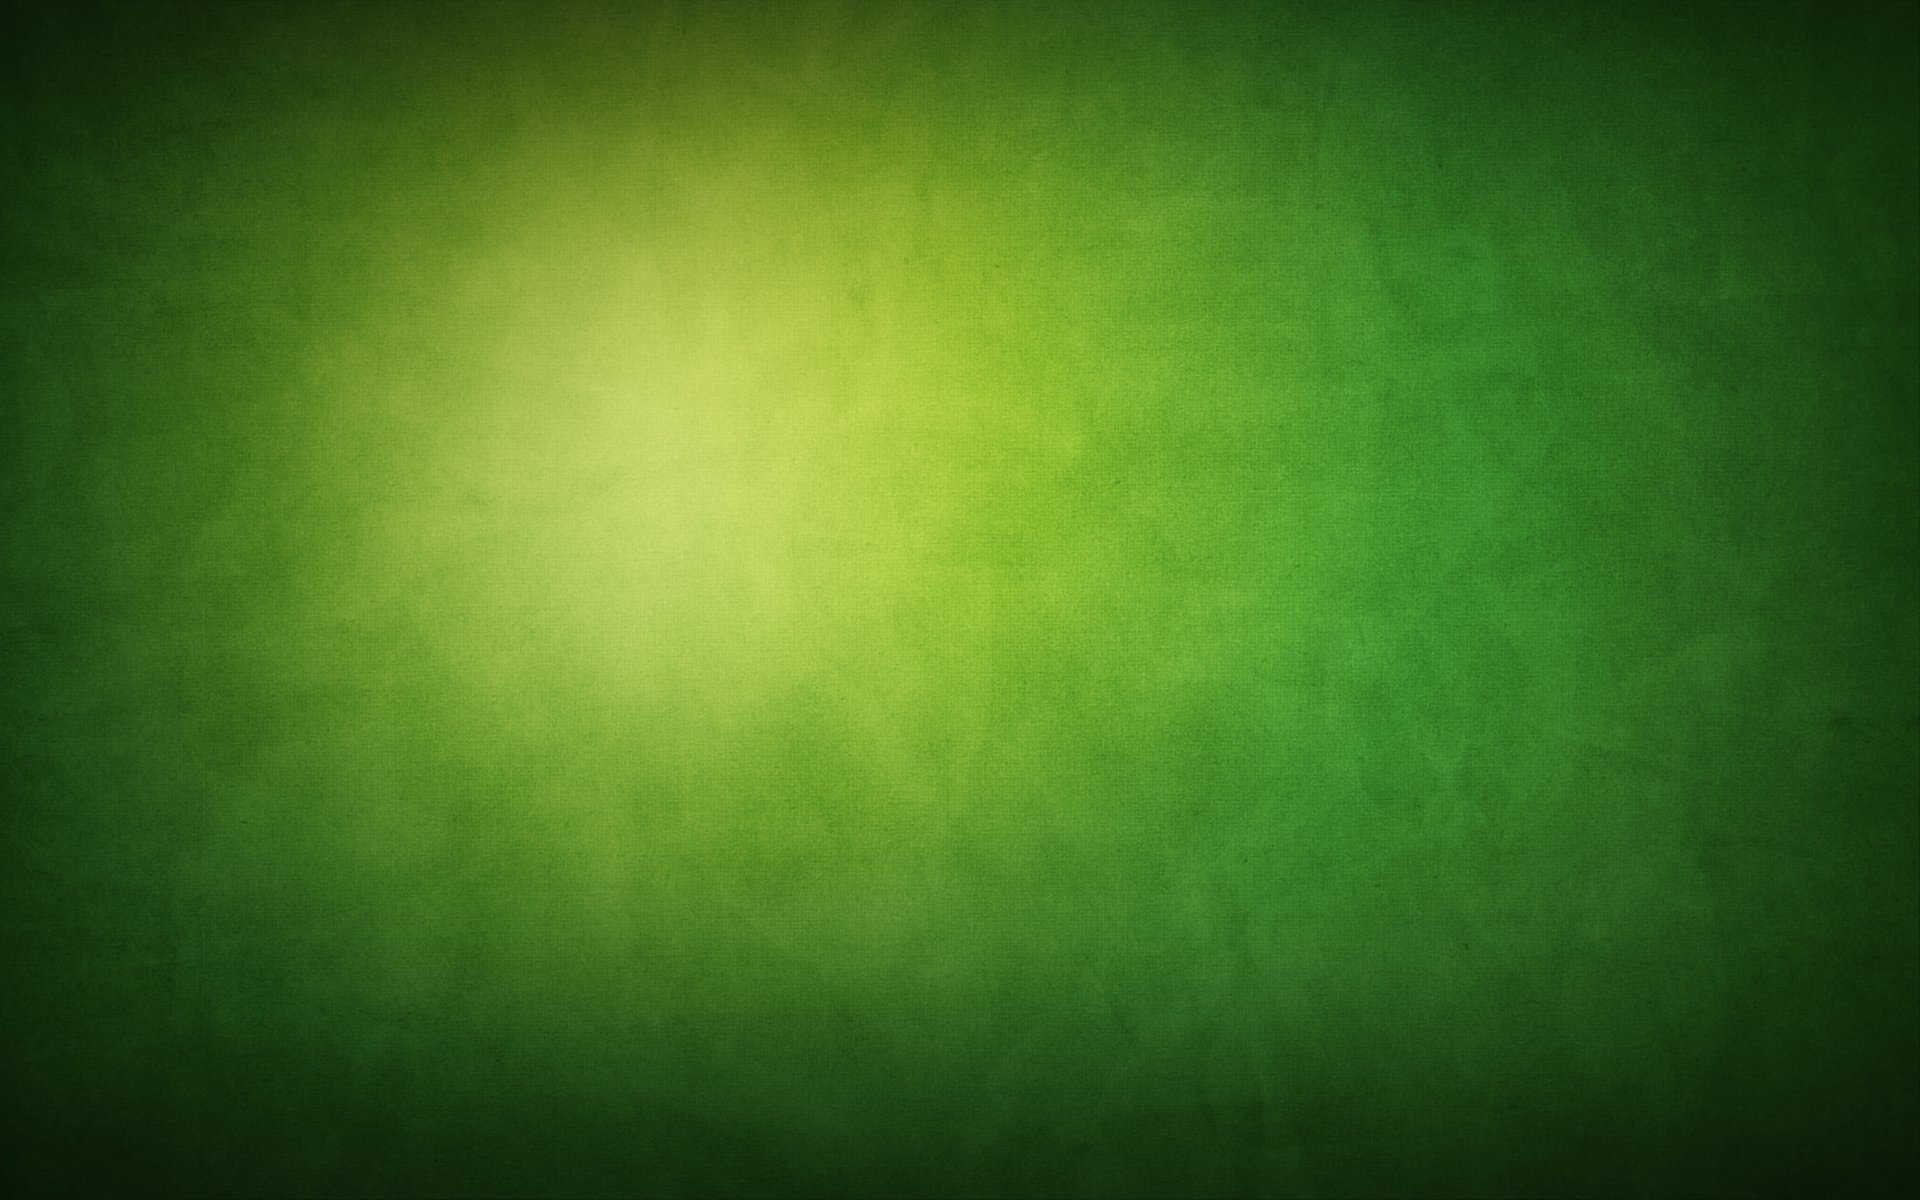 Green Wallpaper 3 1920x1200